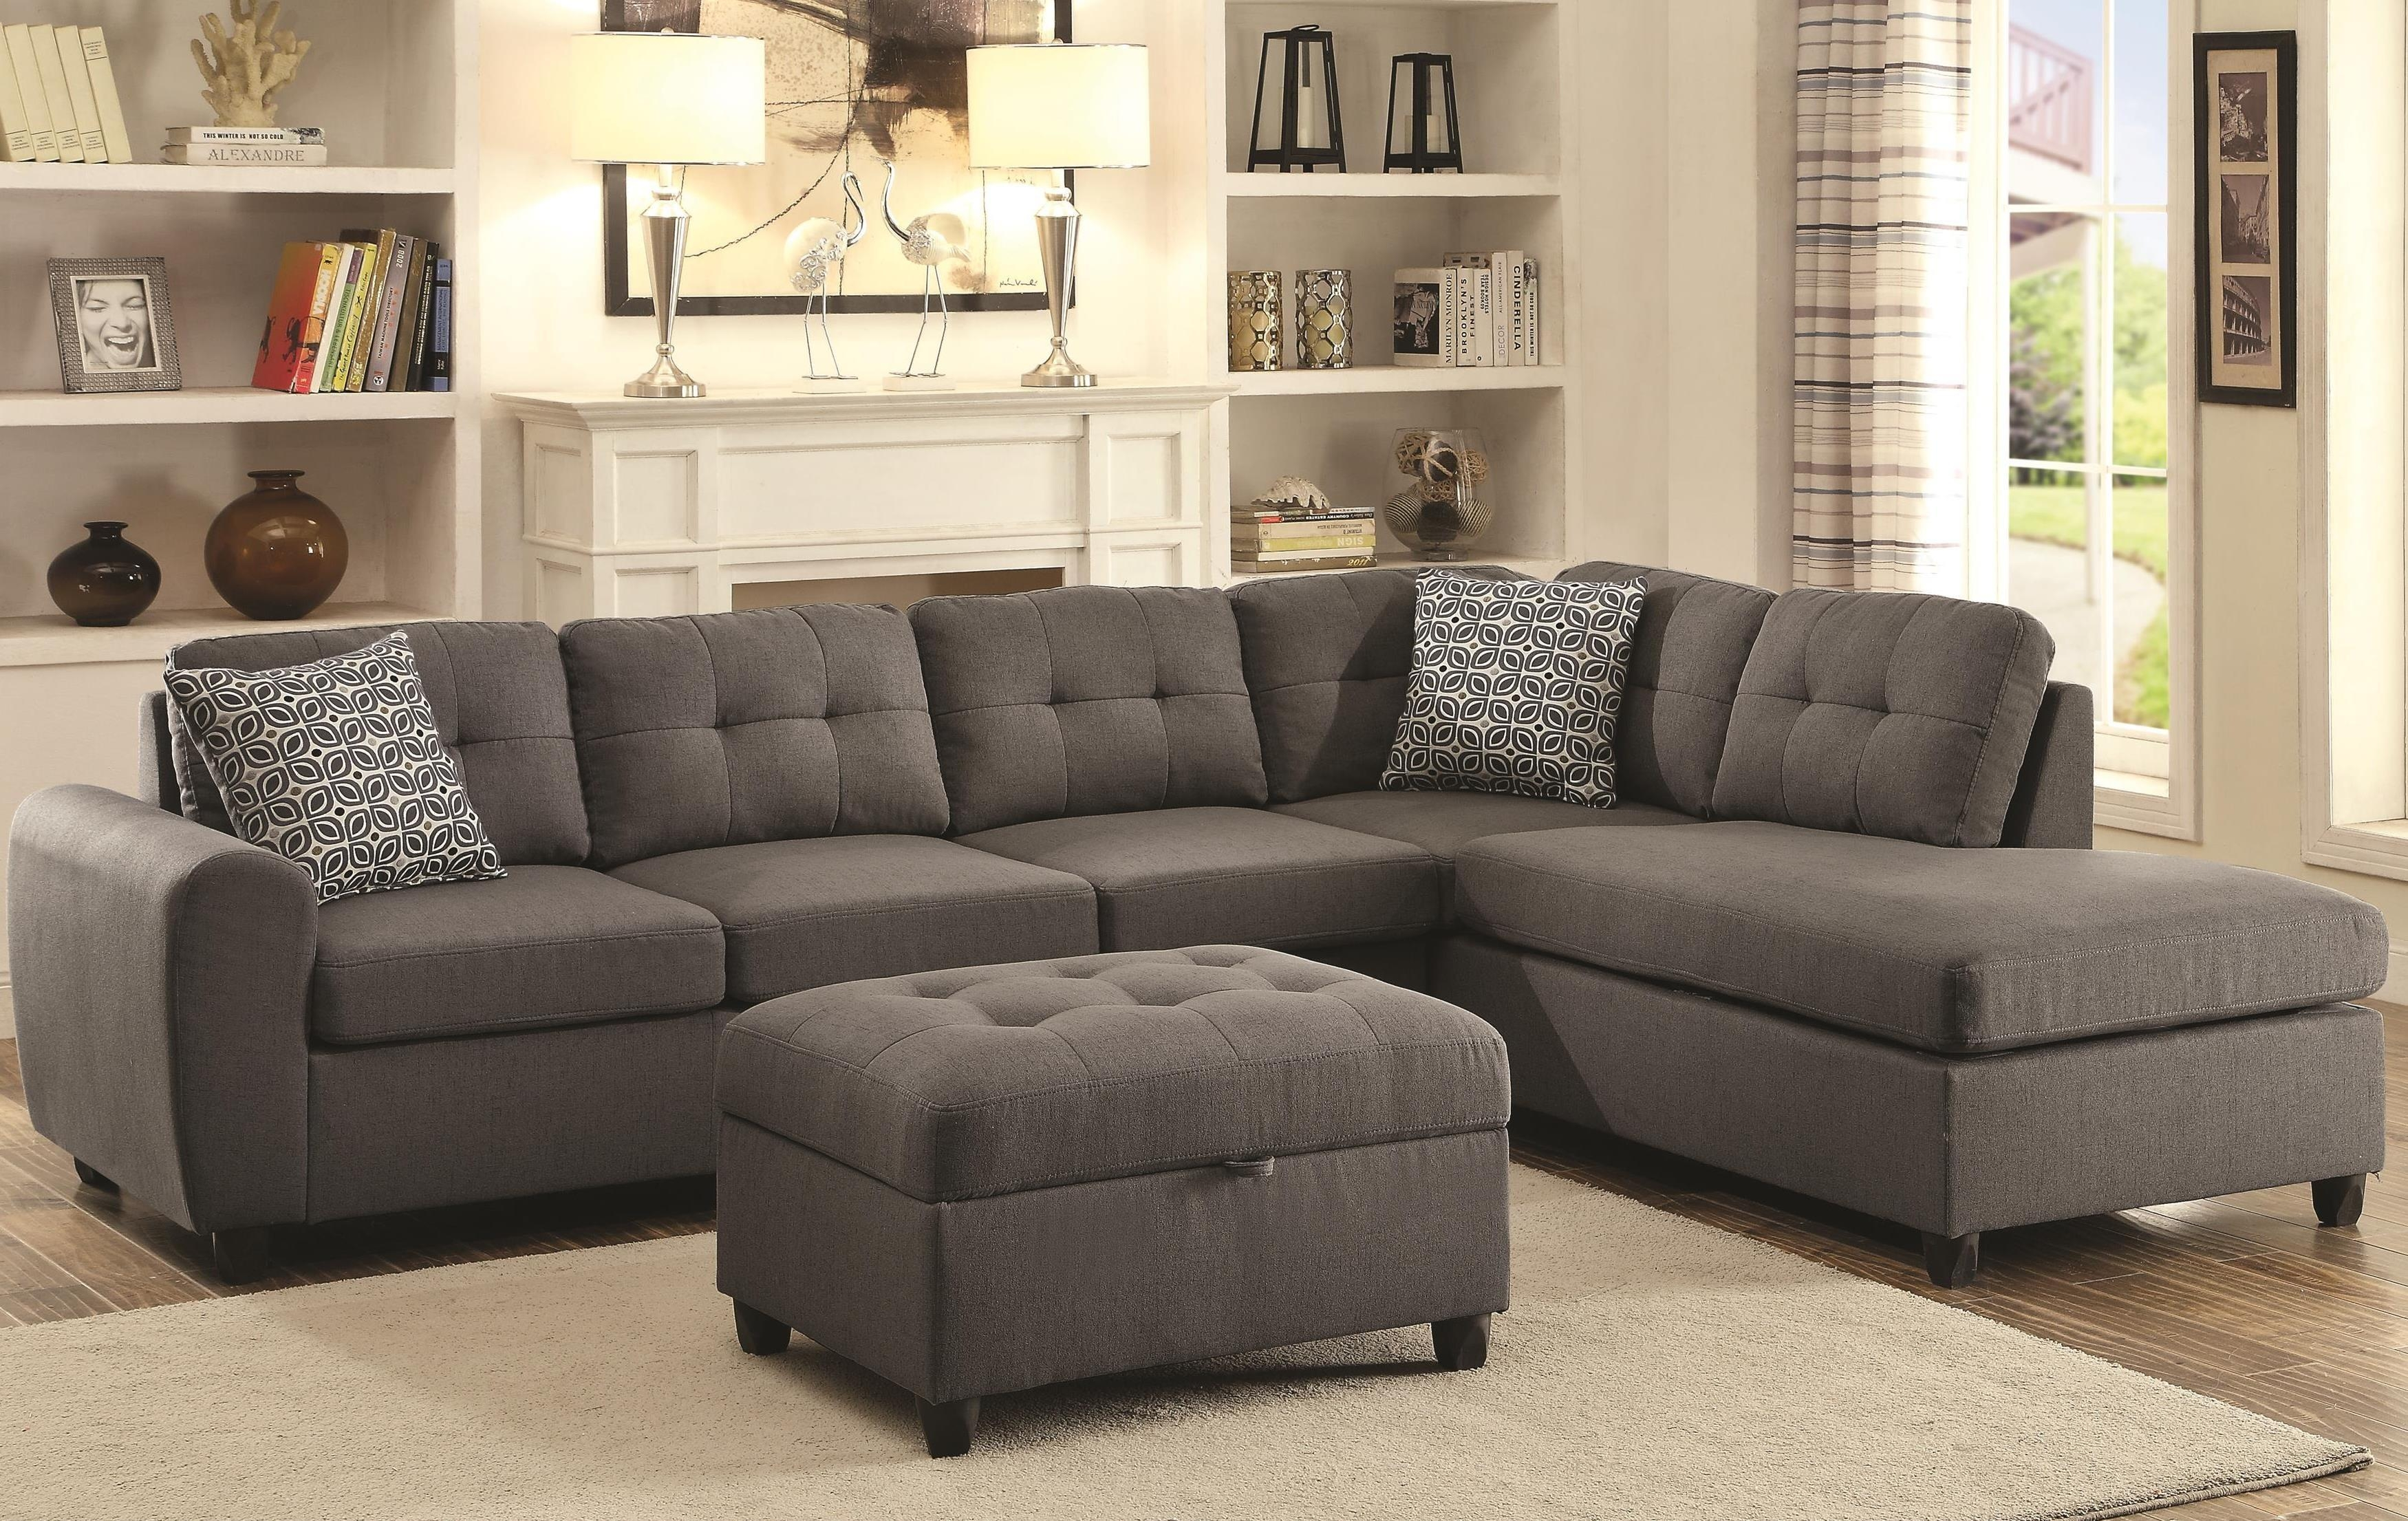 Coaster 500413 Sofa Chaise Sectional With Steel Grey Fabric Upholstery Within Coasters Sofas (View 8 of 20)